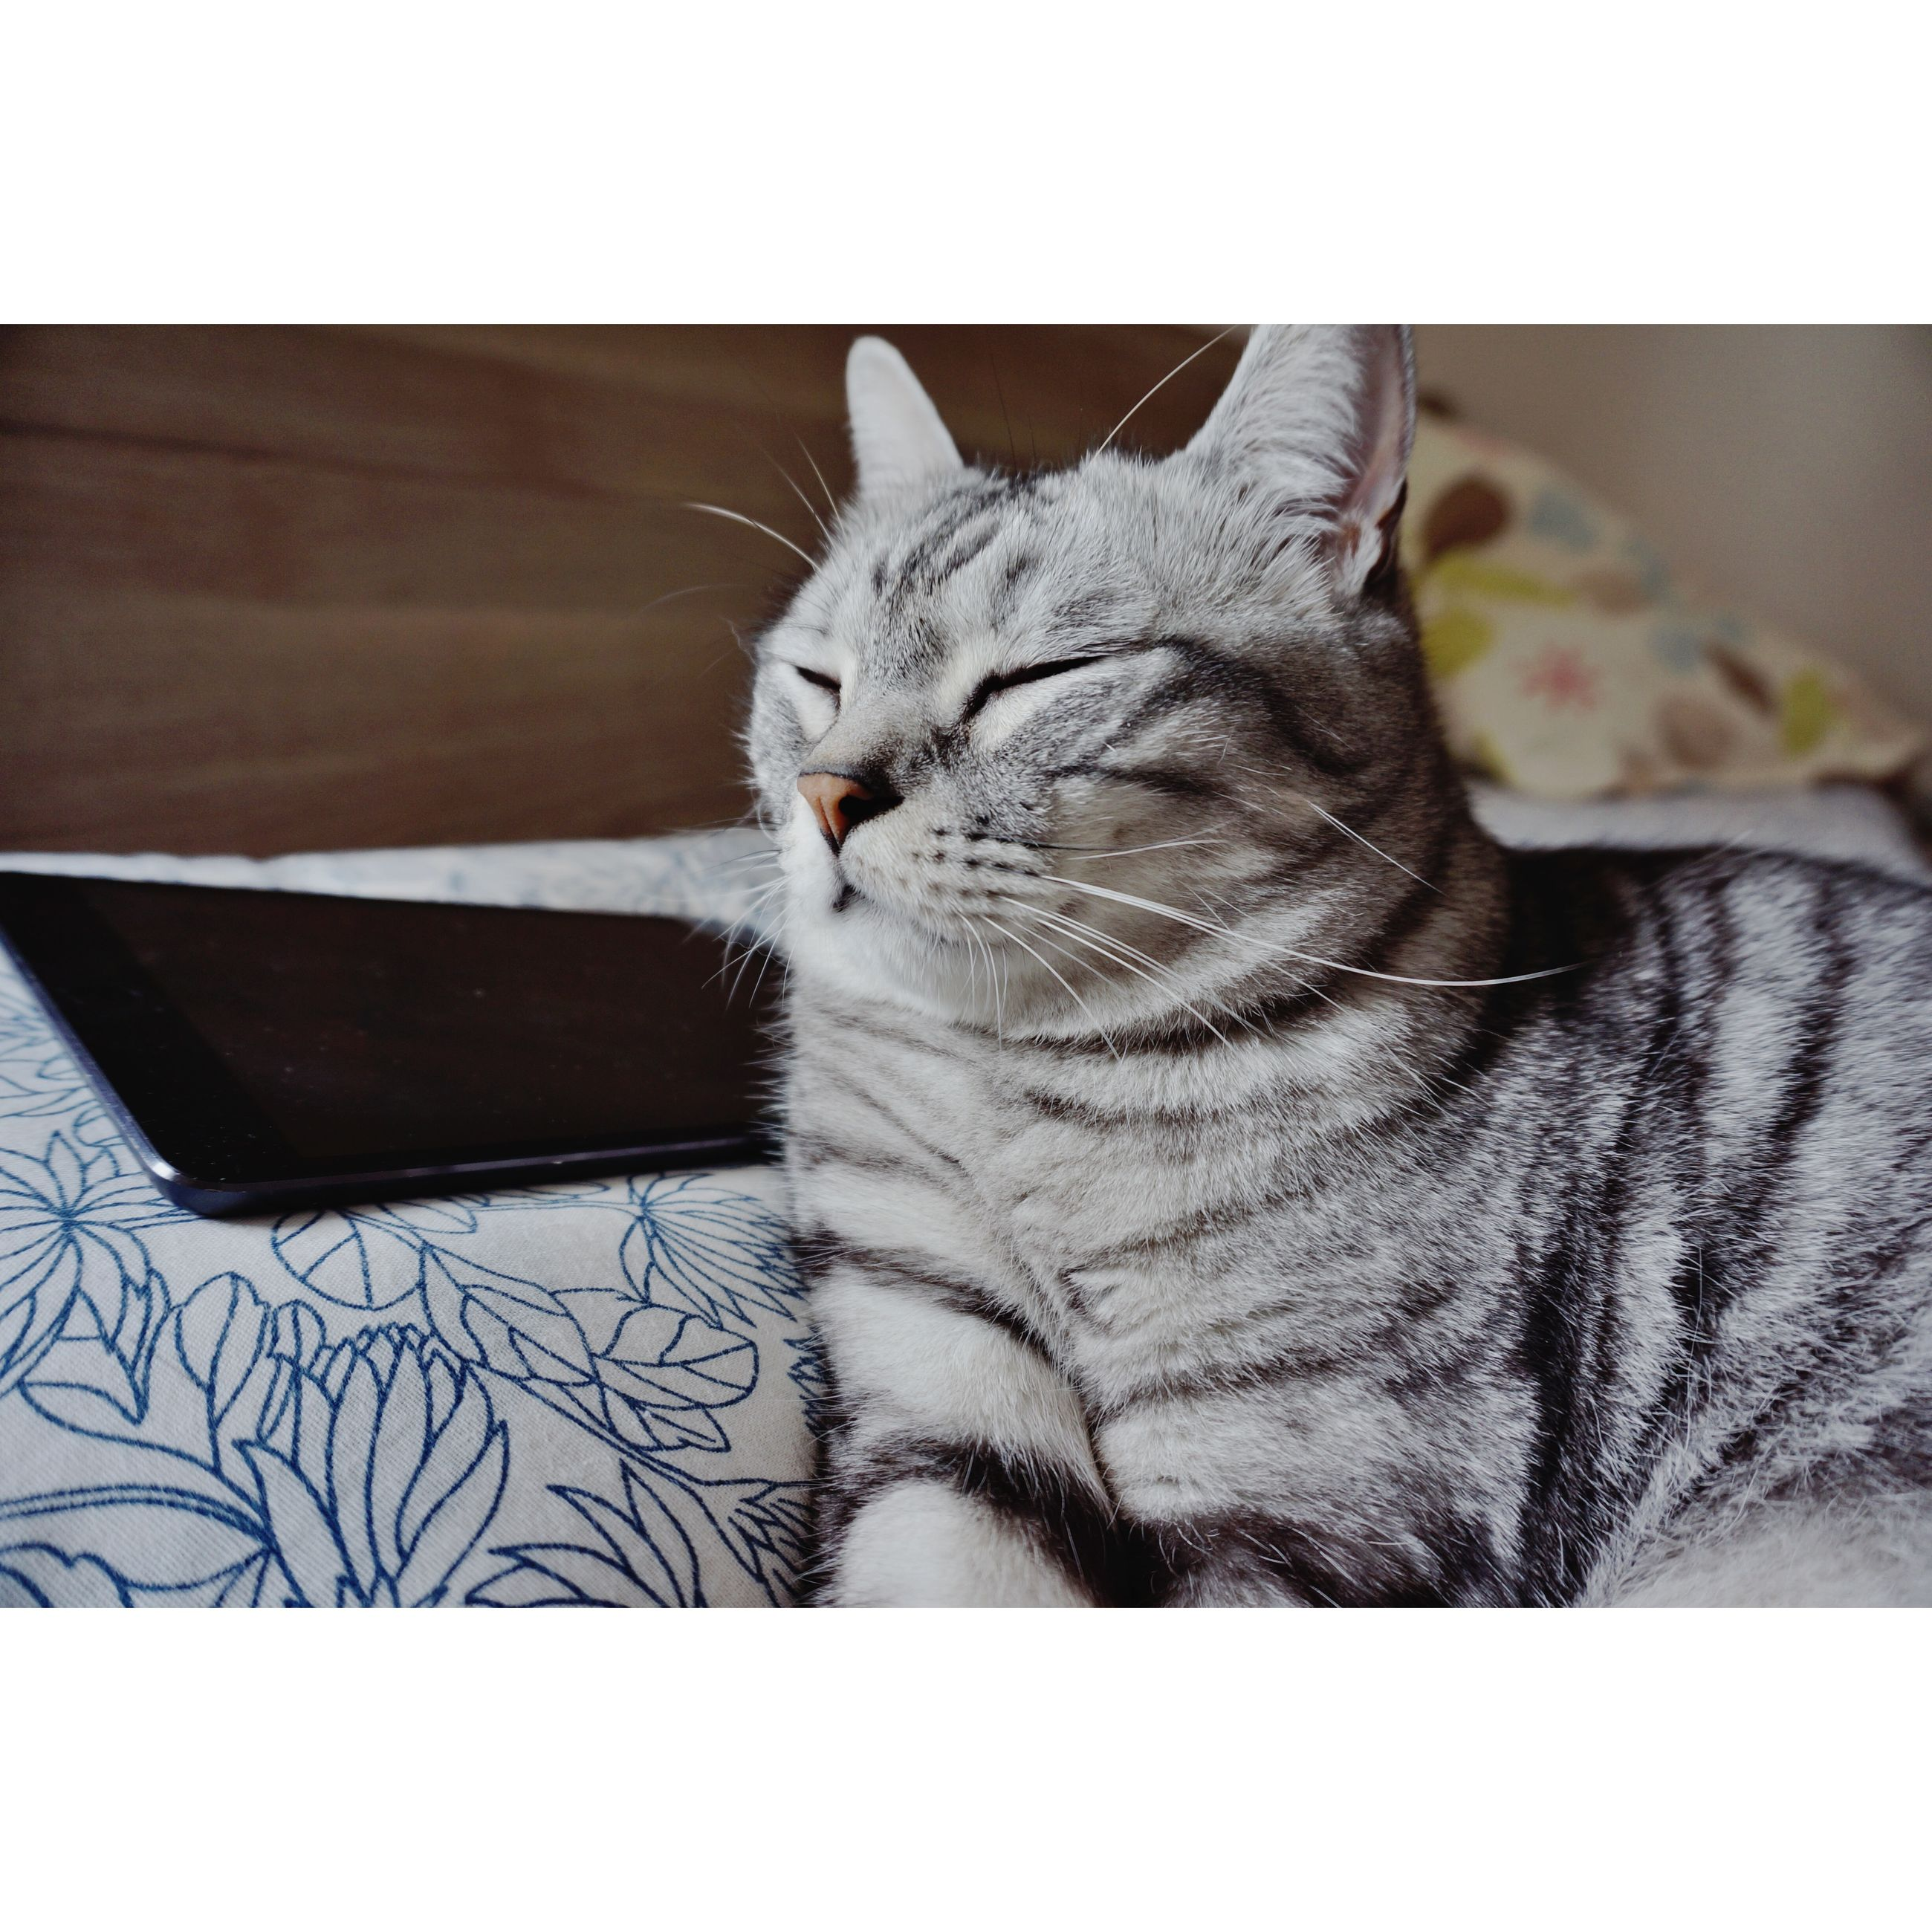 pets, domestic animals, domestic cat, cat, one animal, animal themes, mammal, indoors, feline, relaxation, transfer print, resting, auto post production filter, lying down, whisker, sleeping, bed, home interior, sofa, close-up